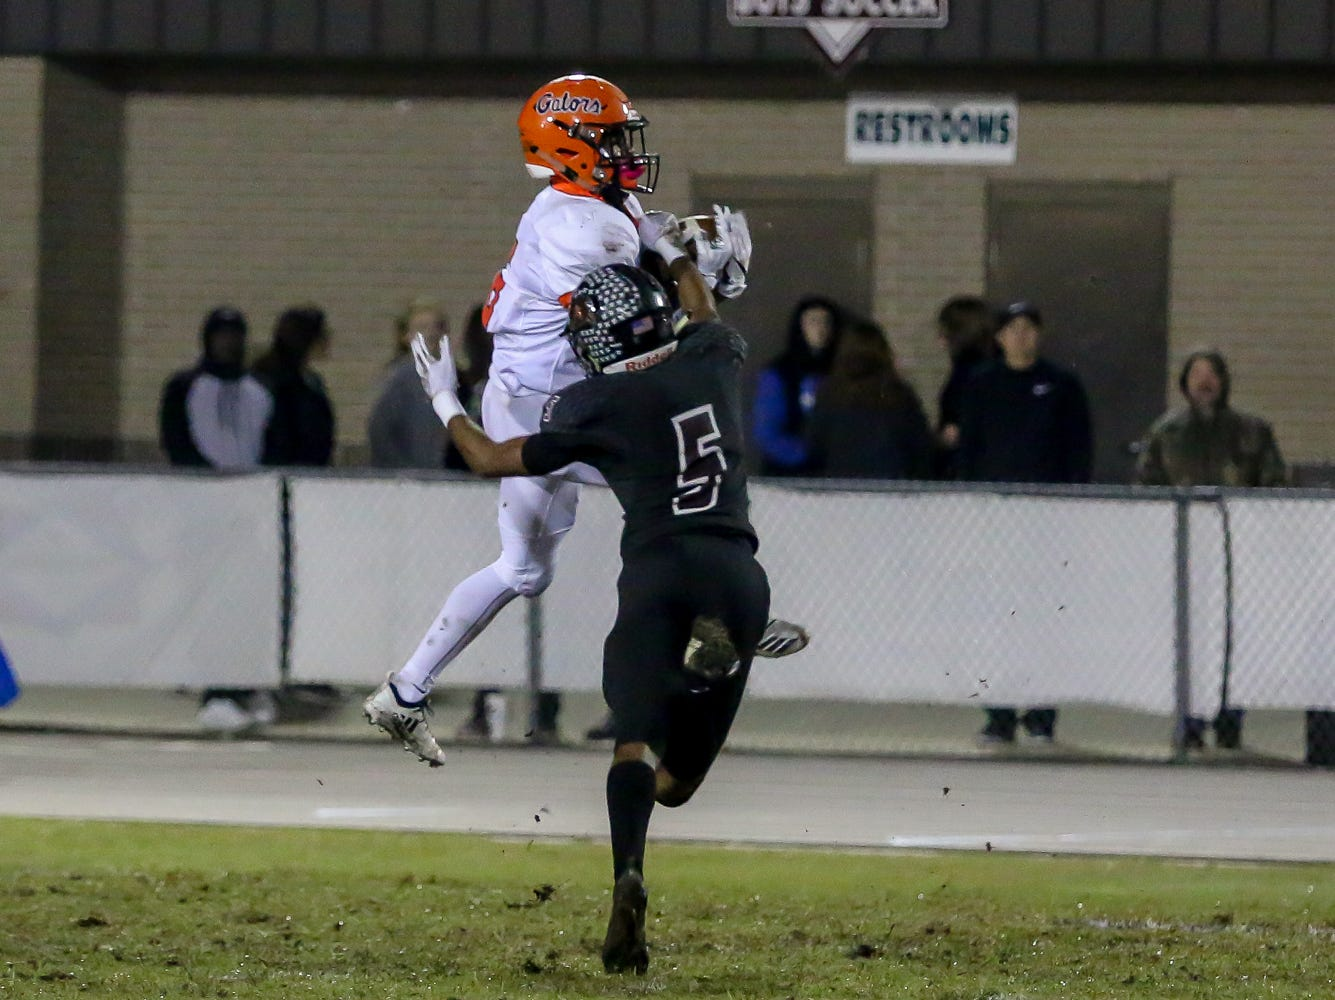 Navarre's Dante Wright (5) breaks up a pass that initially landed perfectly in the hands of Escambia's Deterius Gideon (6) in the Region 1-6A Semifinal game at Navarre High School on Friday, November 16, 2018.